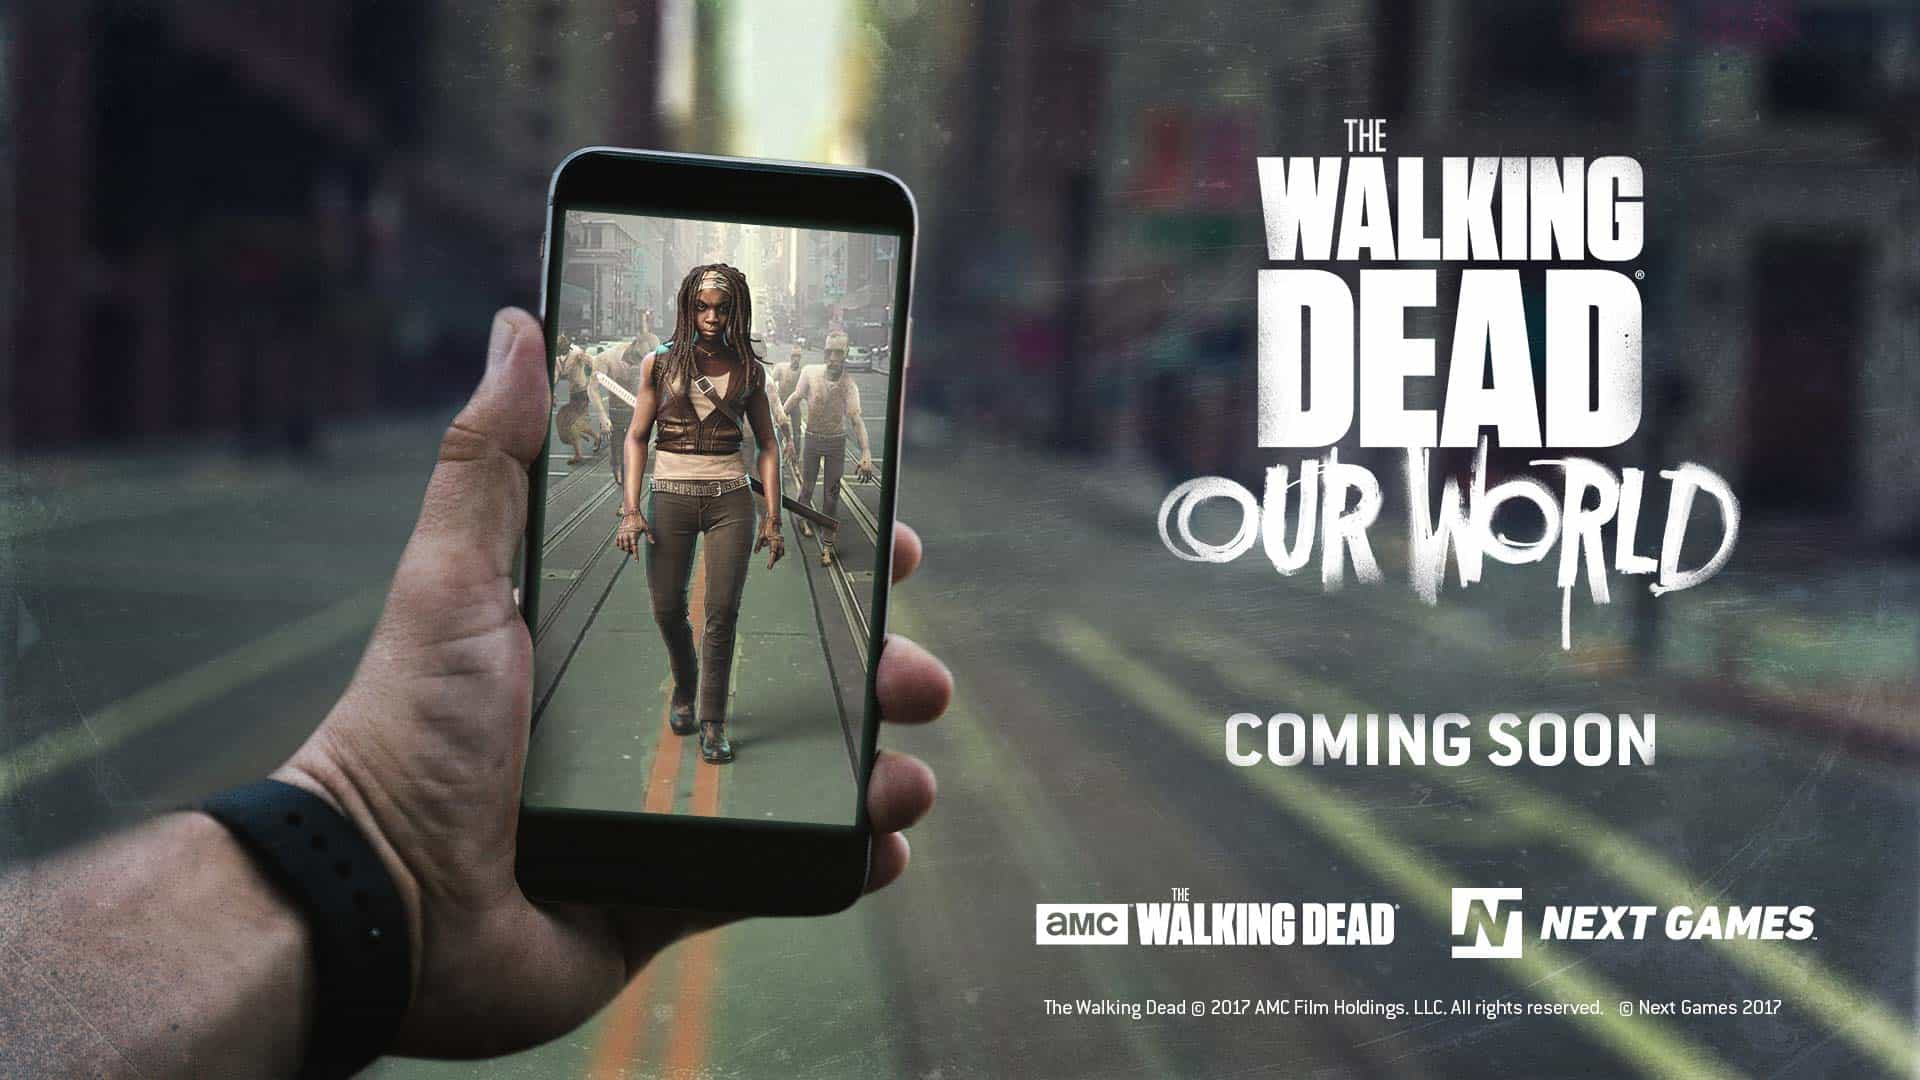 The Walking Dead Our World gameplay